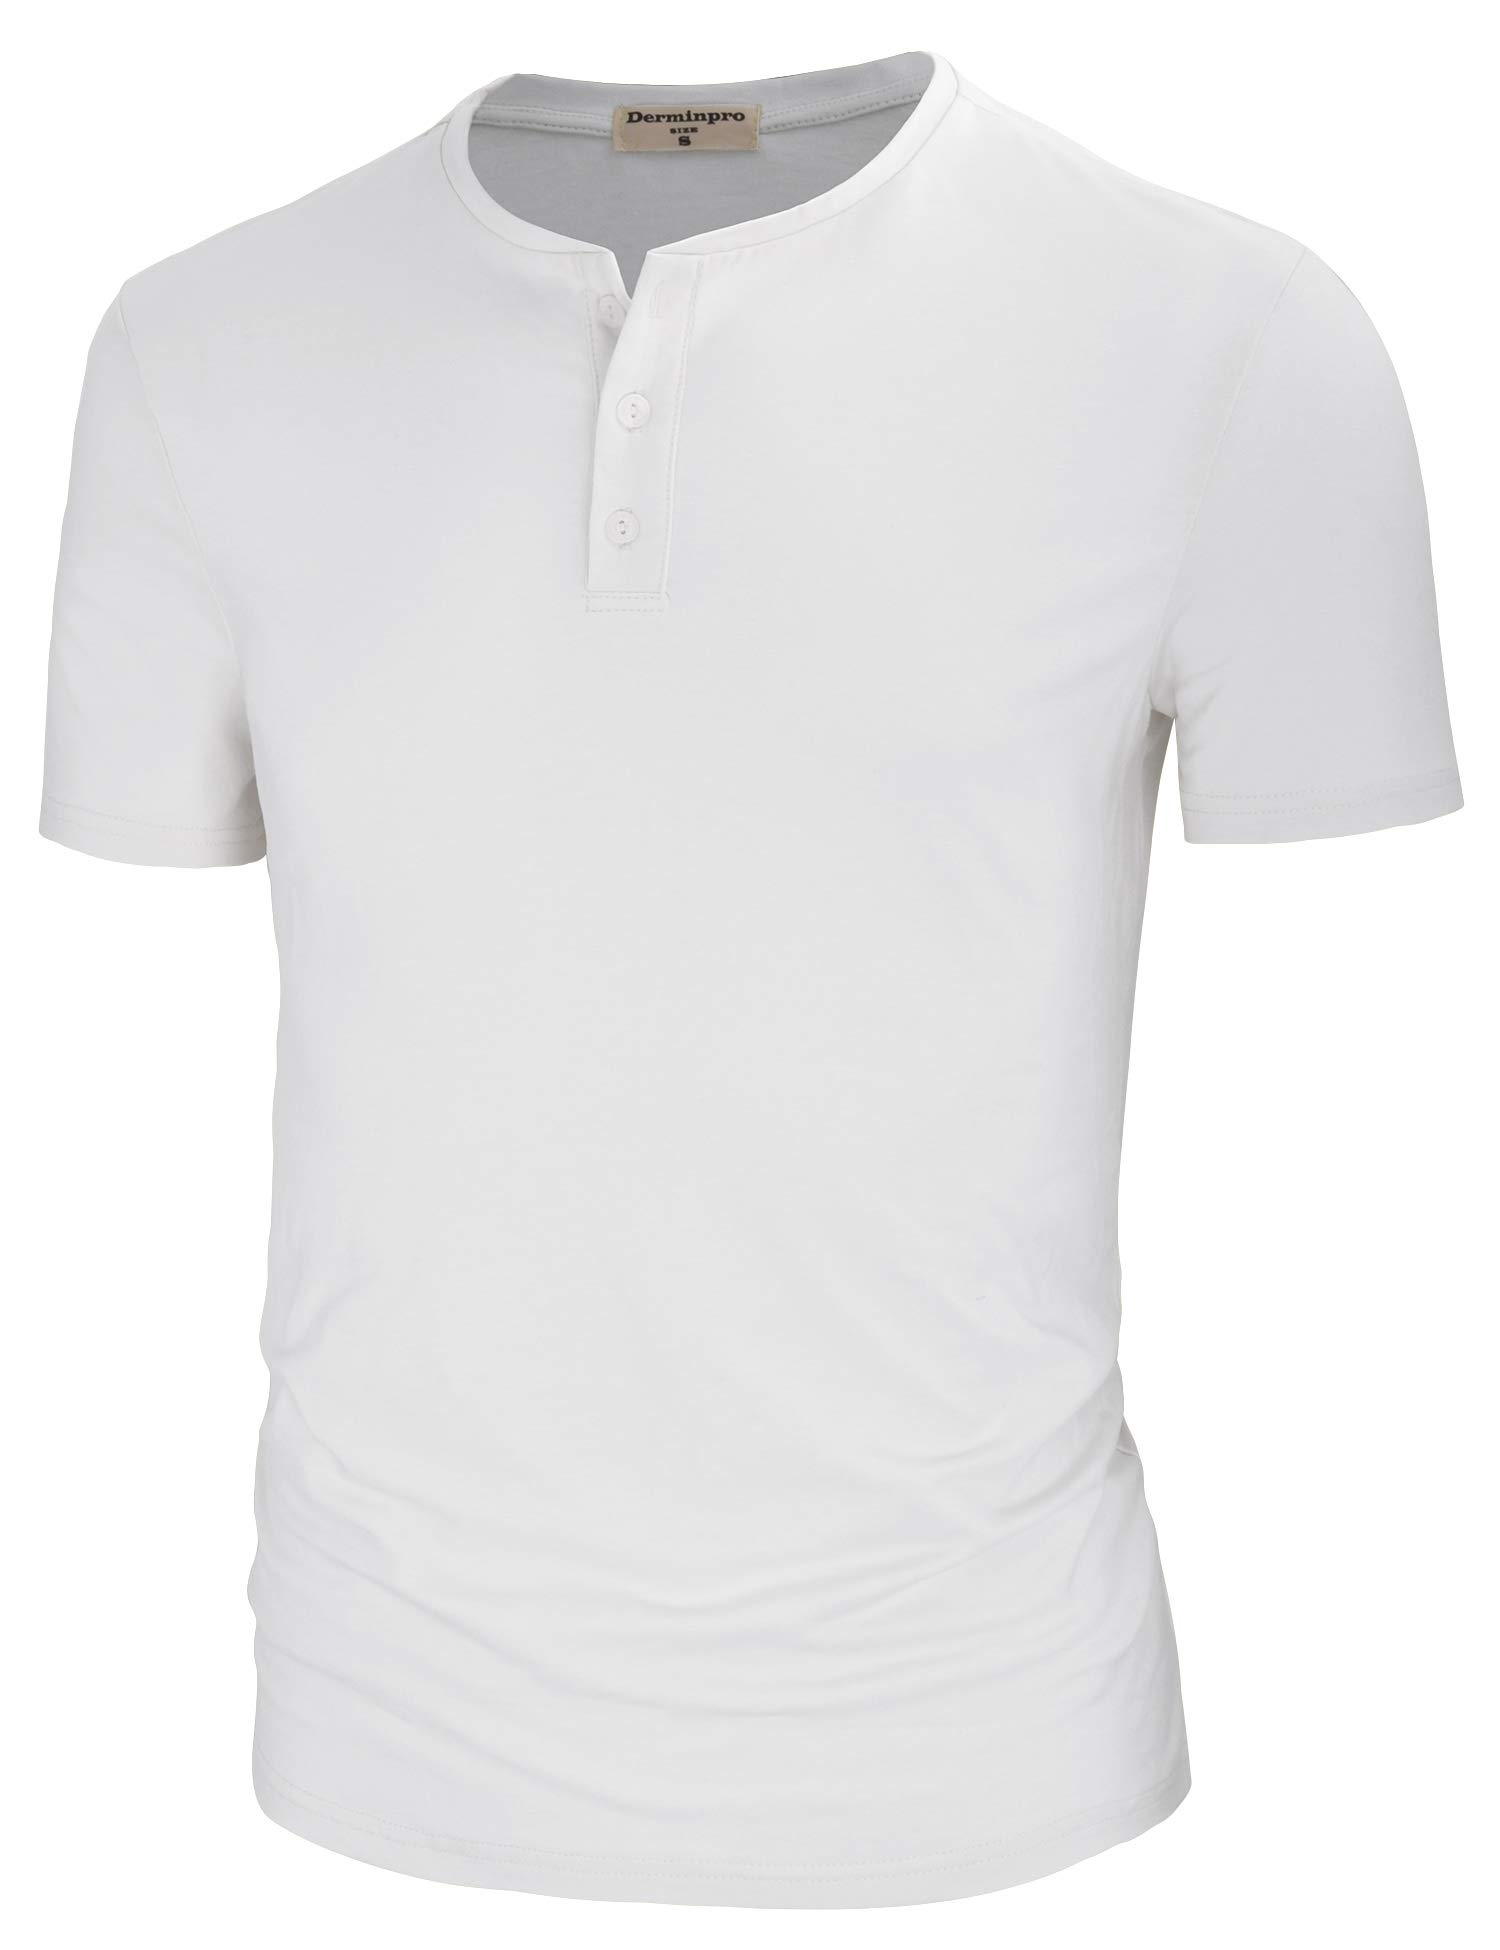 Derminpro Men's Casual Regular Fit Cotton Henley T-Shirts White XX-Large